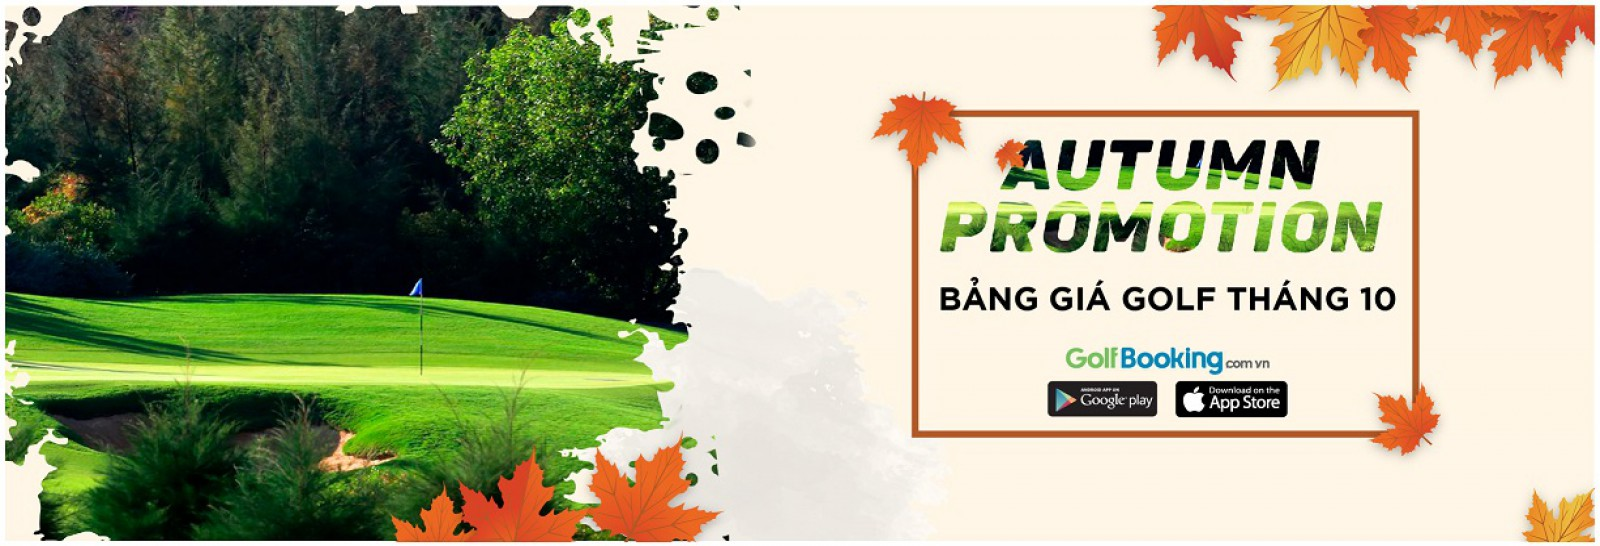 October 2020 Golf Booking Quotation